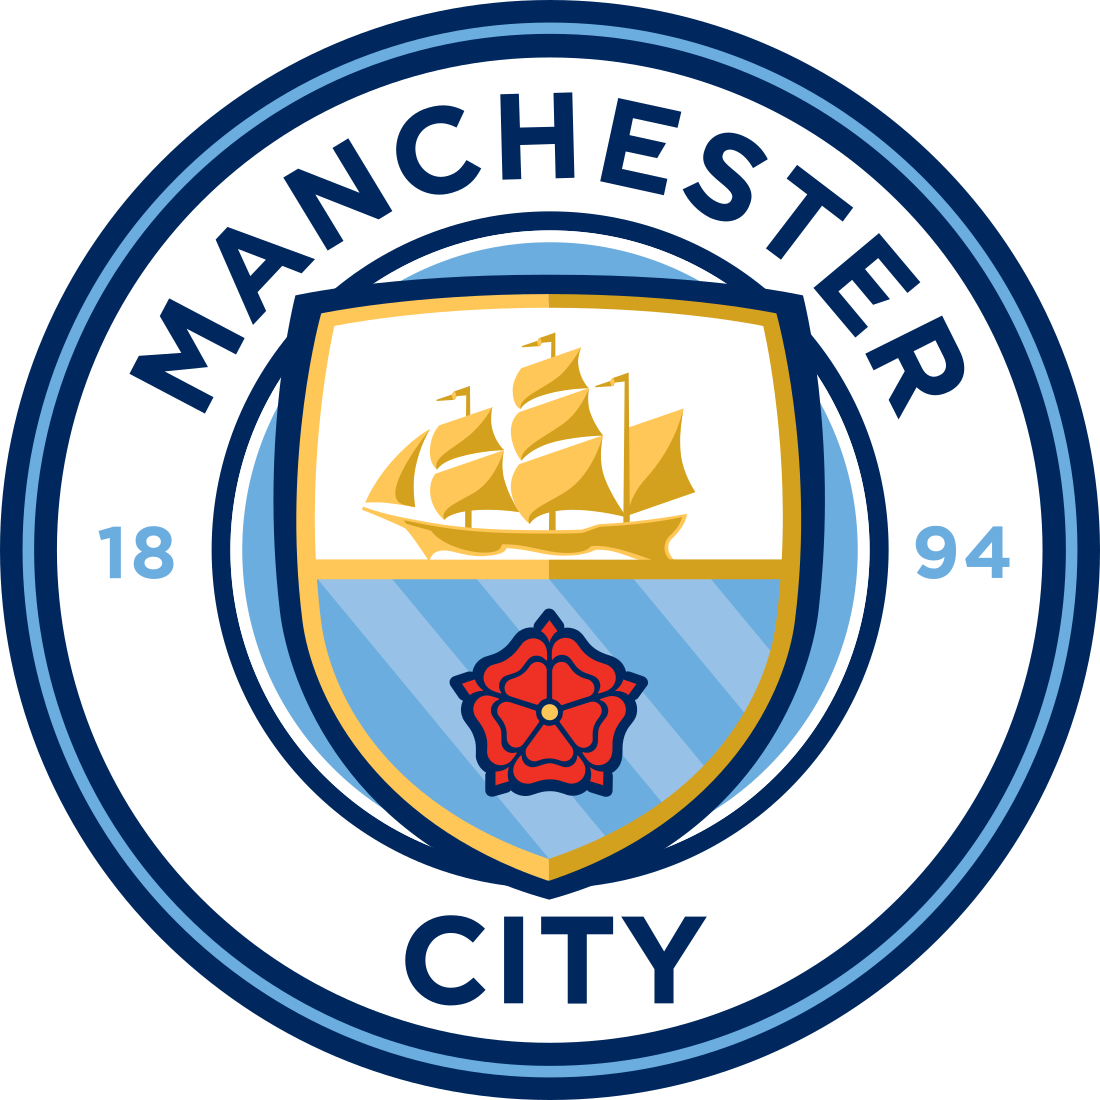 manchester city fc logo escudo badge 3 - Manchester City Logo - Manchester City Football Club Escudo